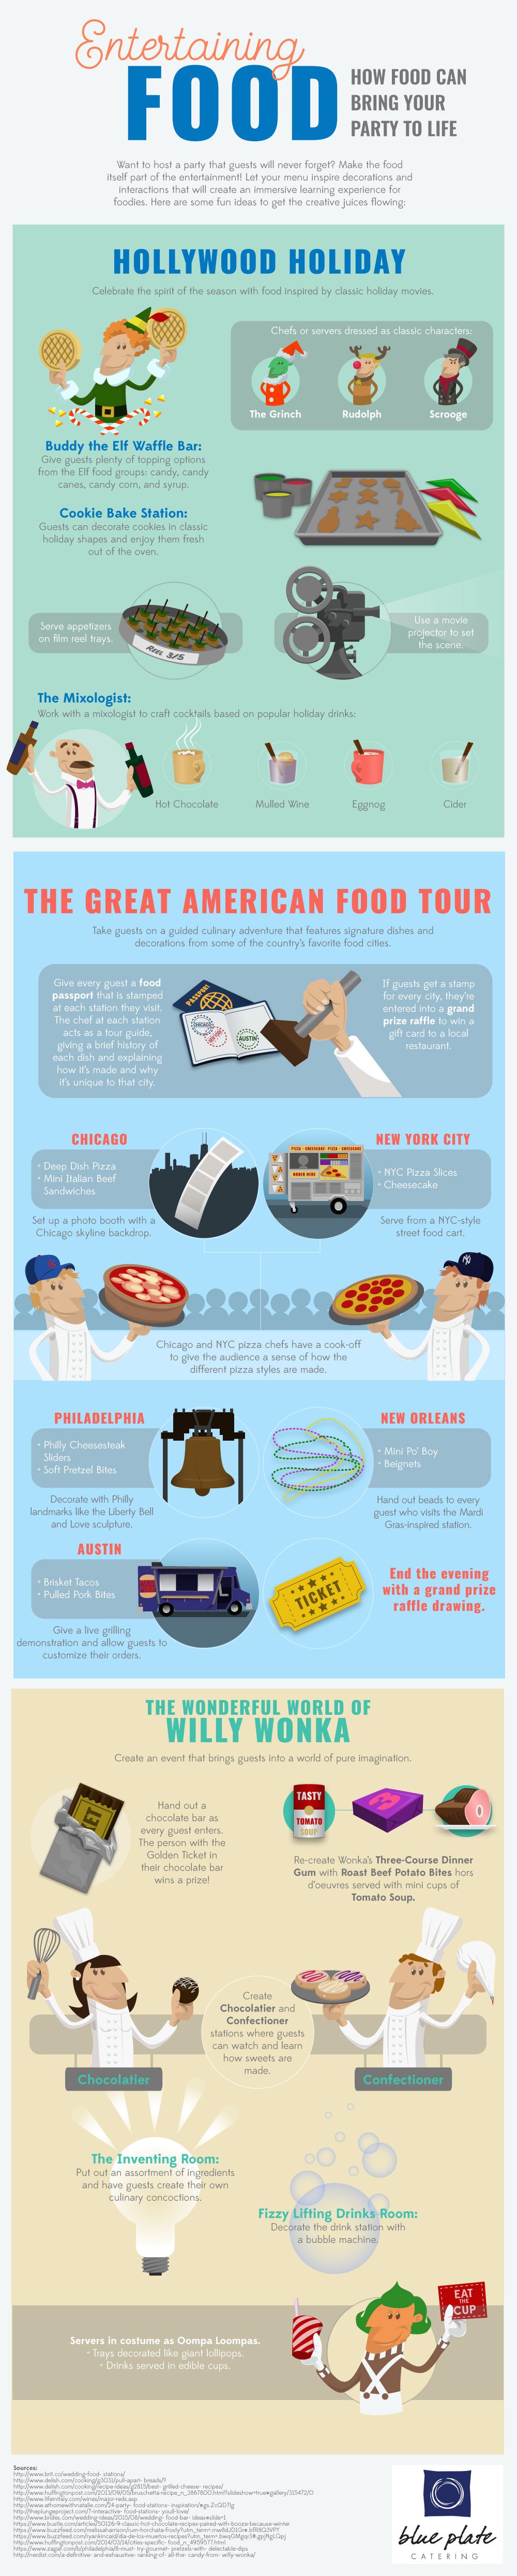 How To Make Sure Your Party Doesn't Have Boring Food - Infographic